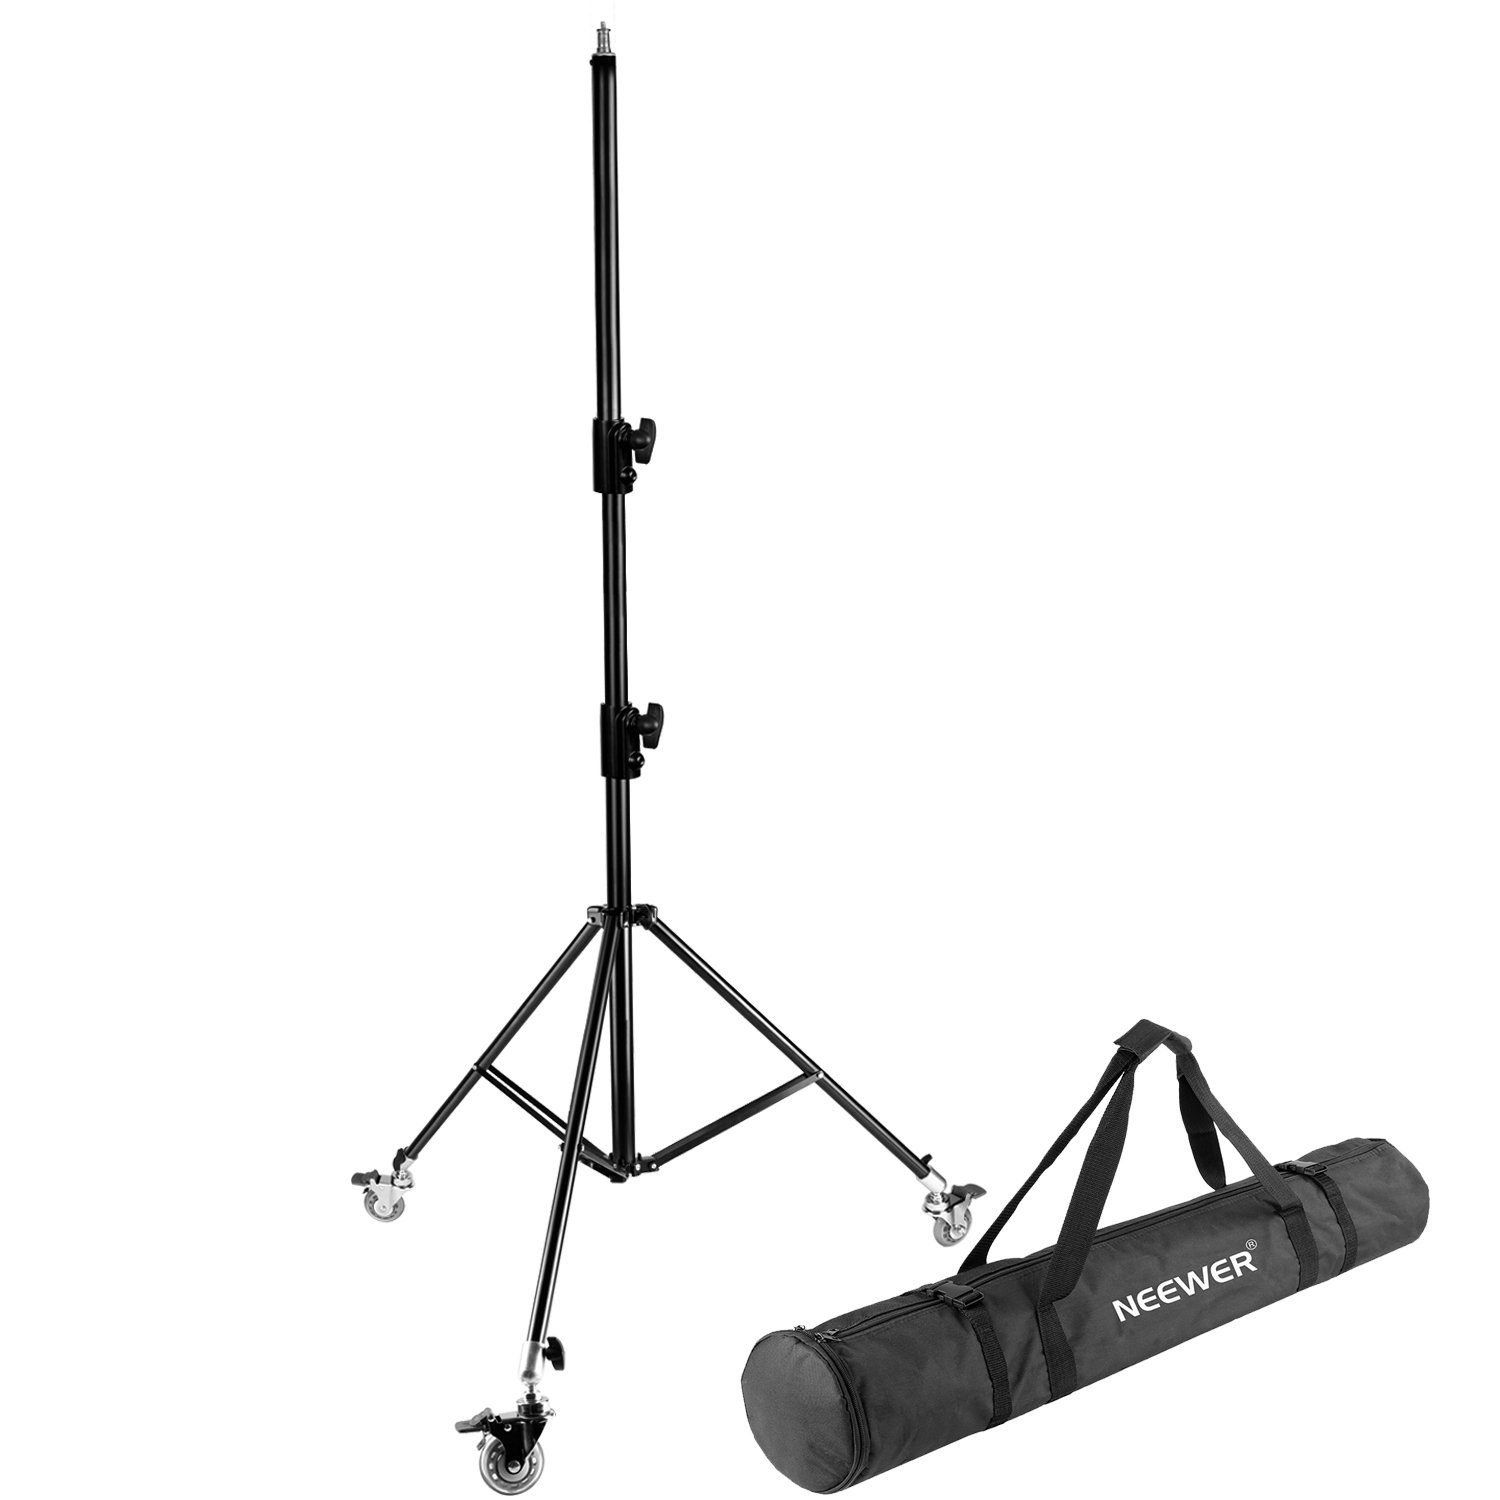 Neewer Pro Version Photography Adjustable 102 inches/260 centimeters Light Stand Tripod with Caster Wheels and Carrying Case for Ring Light Studio LED Light Softbox Reflector Umbrella and Background